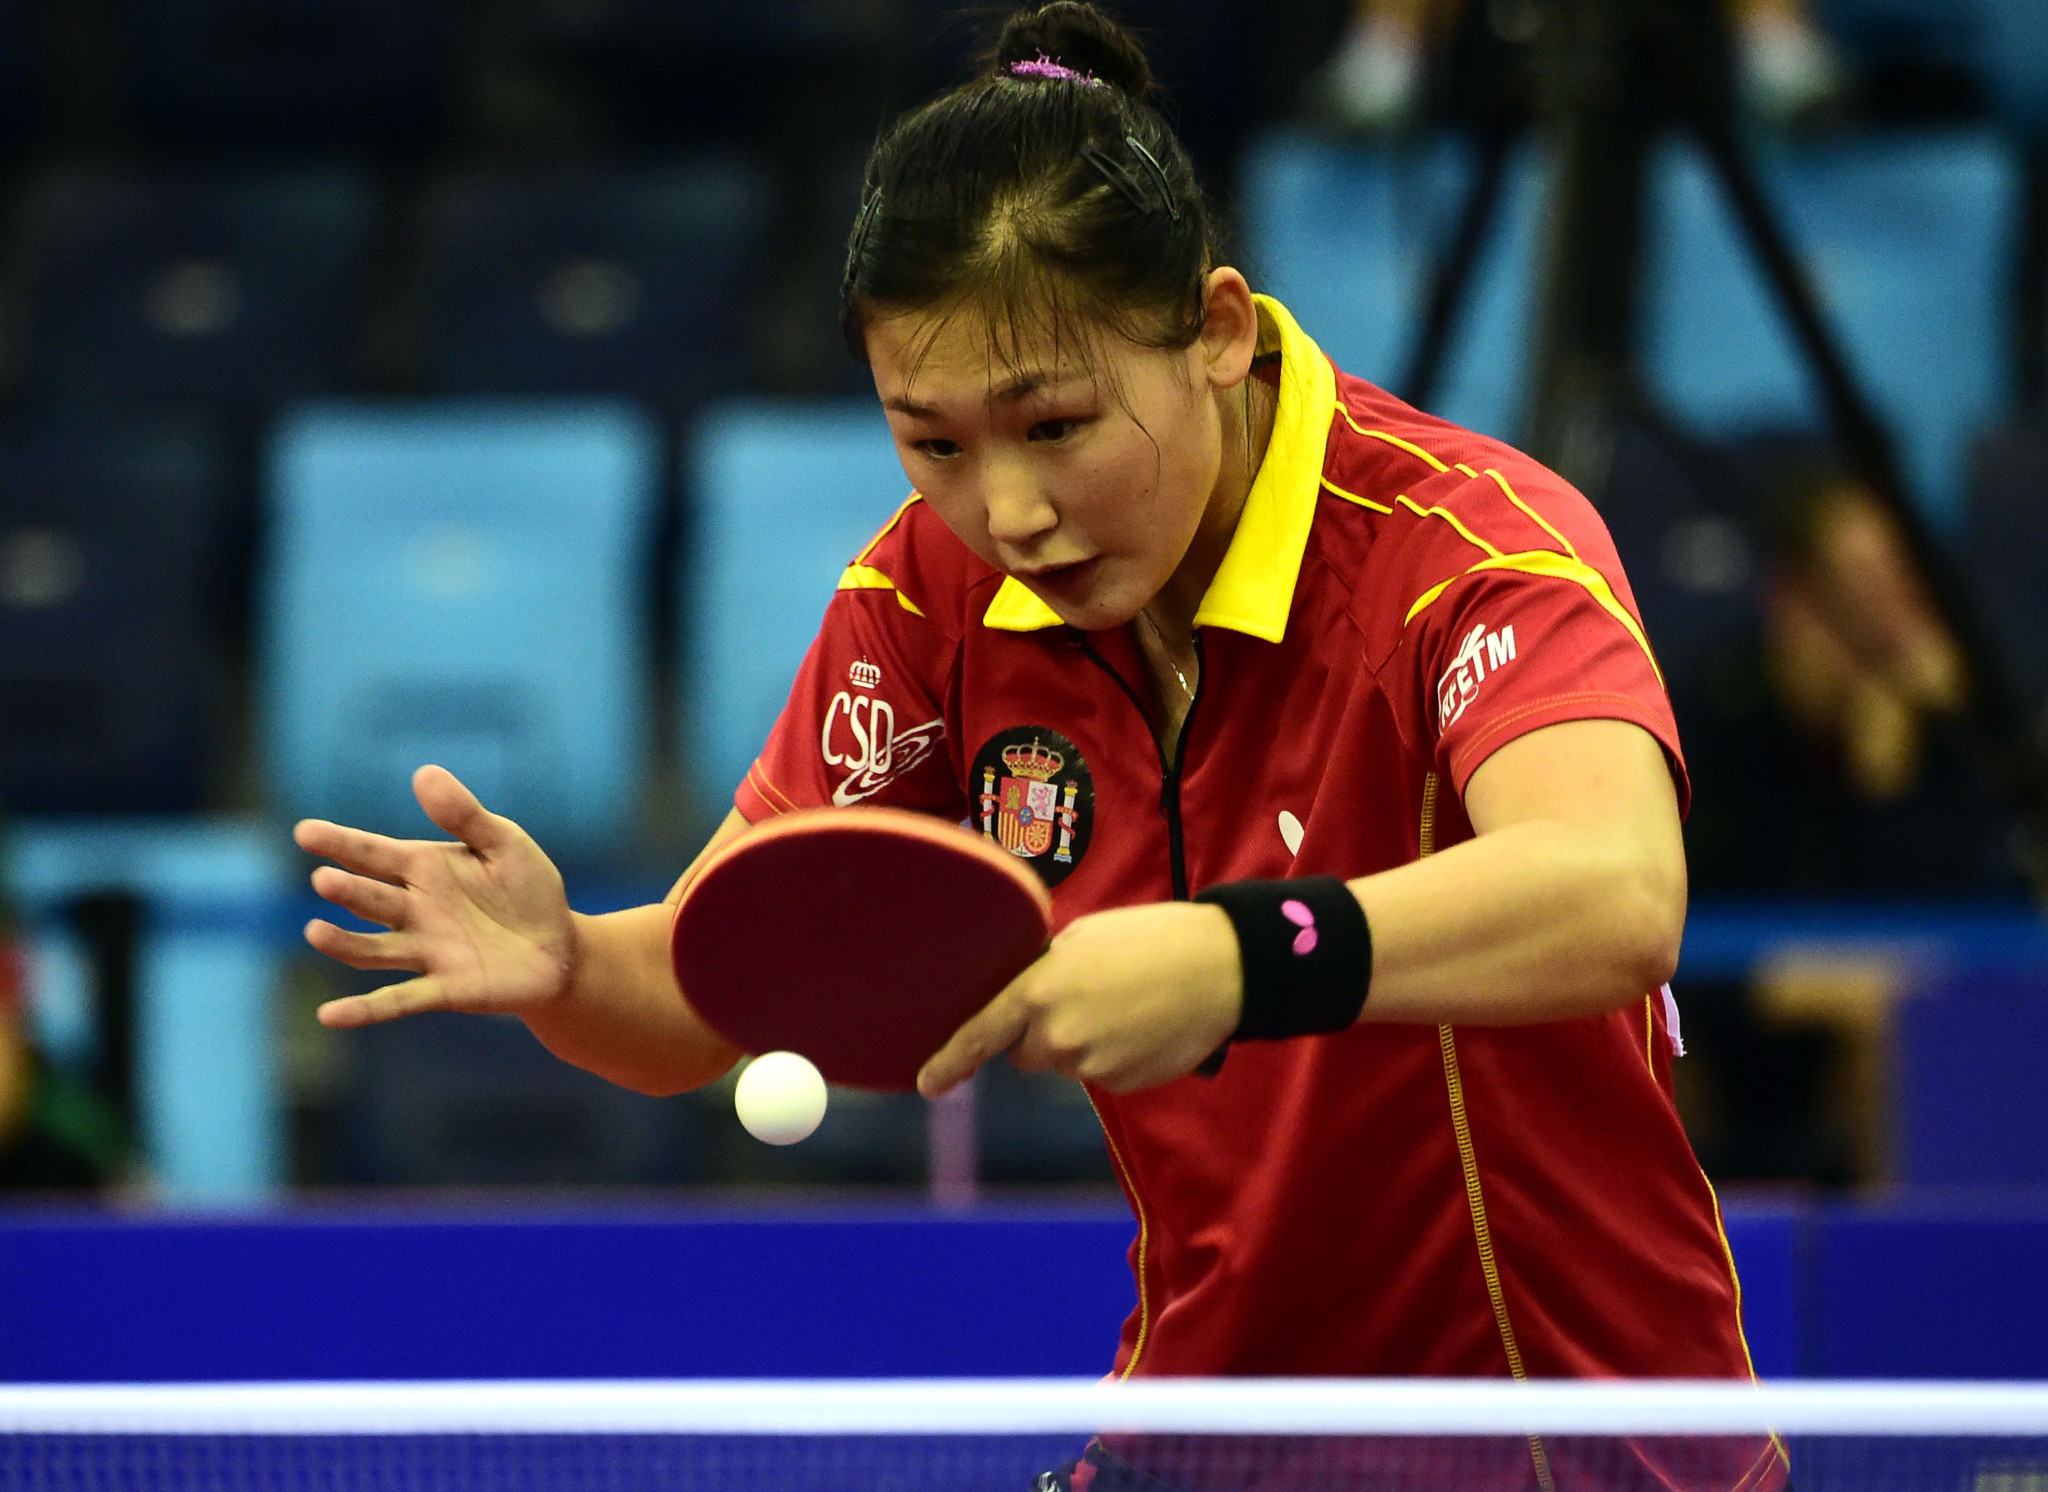 Maria Xiao defeated Barbora Balazova to secure her place at Tokyo 2020 ©Getty Images